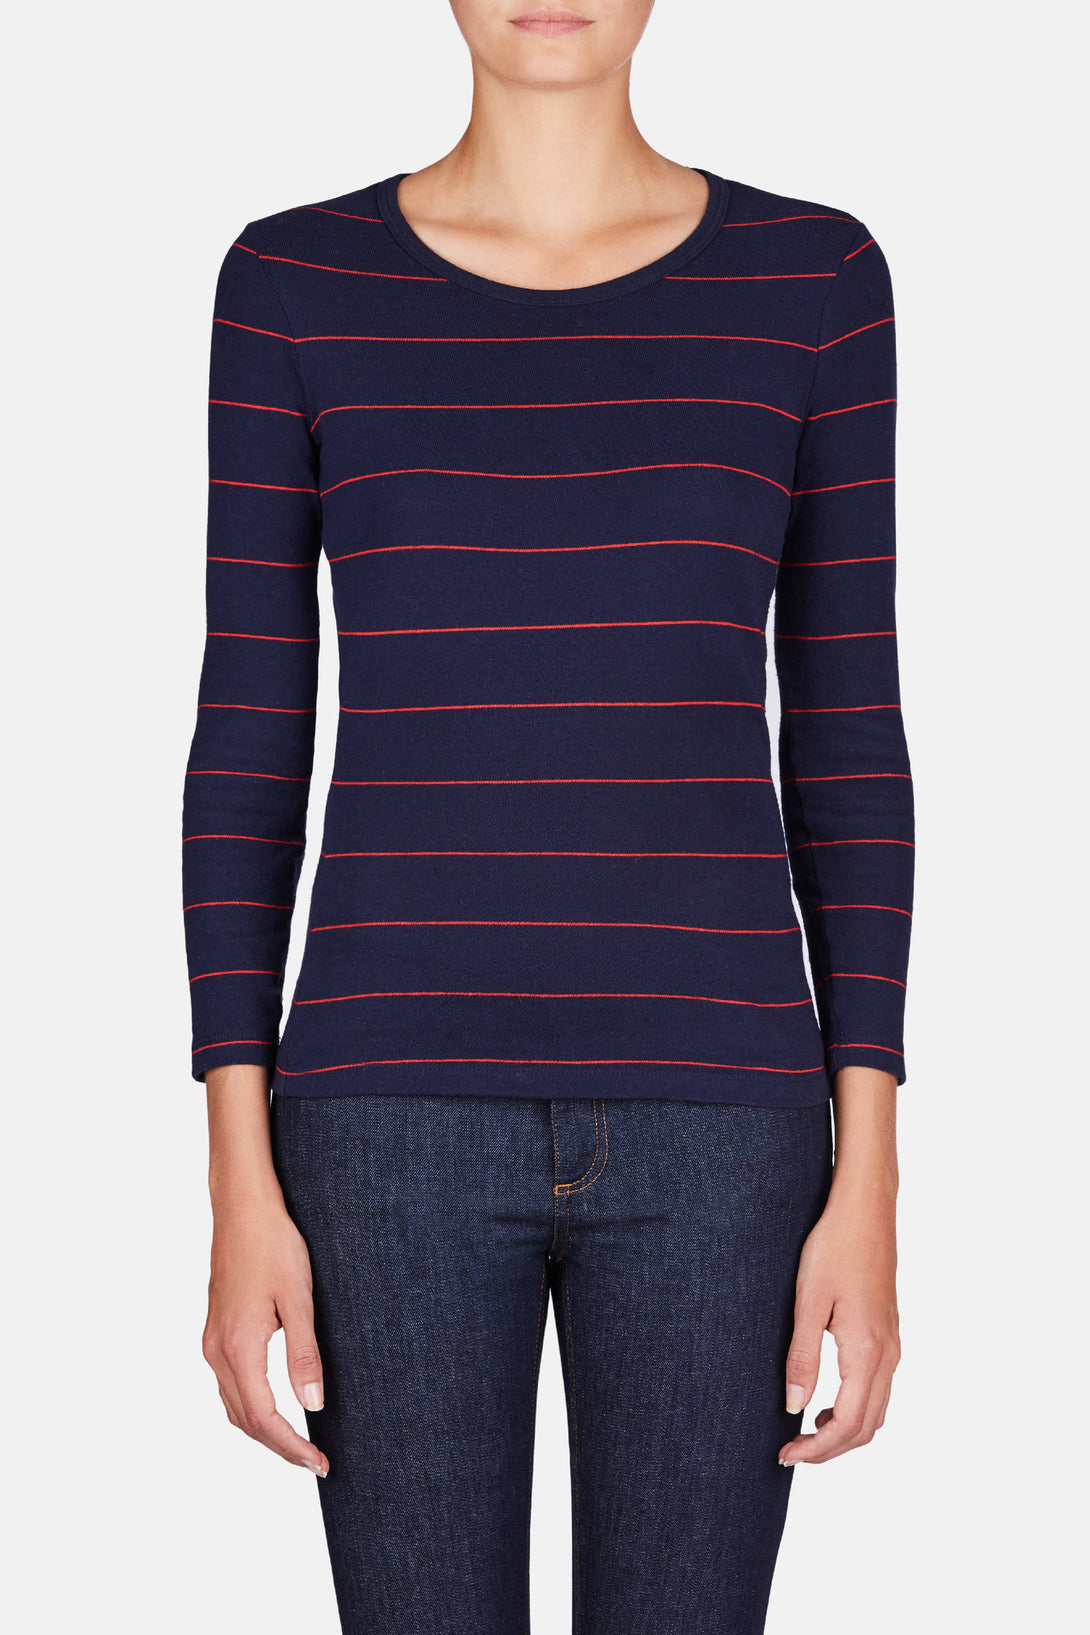 The Jacklyn Long Sleeve Tee - Navy/Red